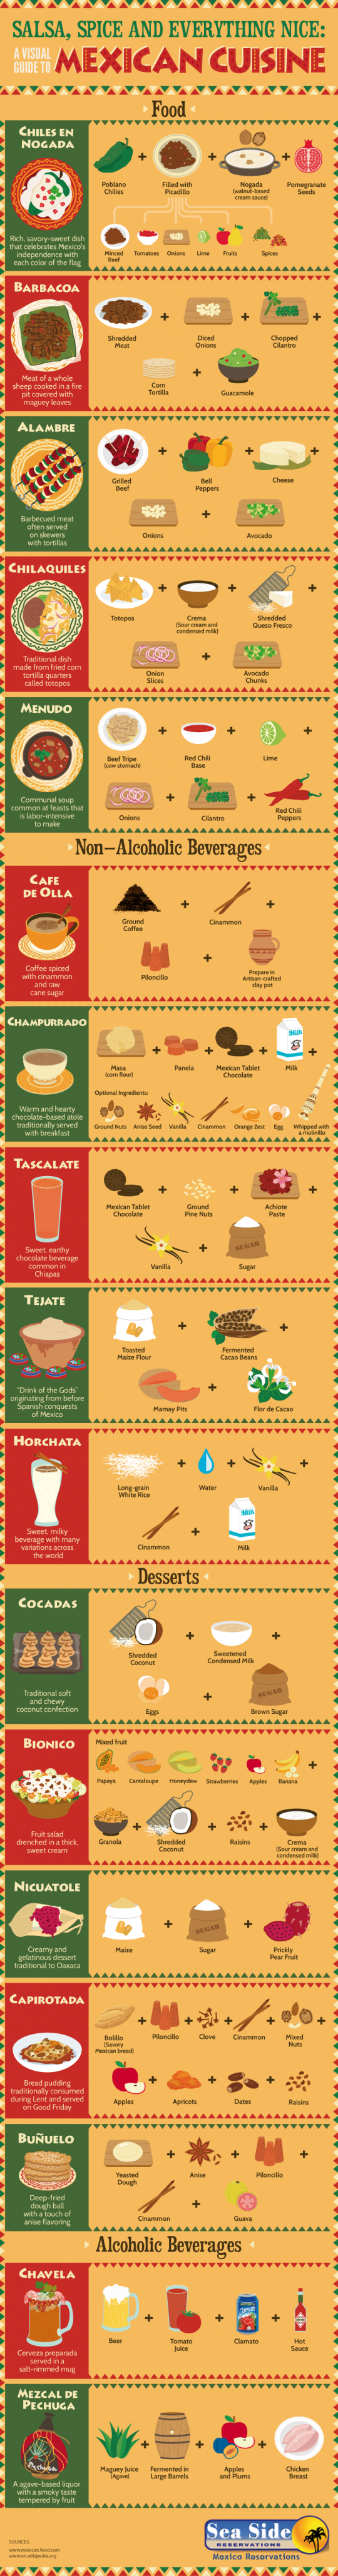 Salsa, Spice and Everything Nice: A Visual Guide to Mexican Cuisine